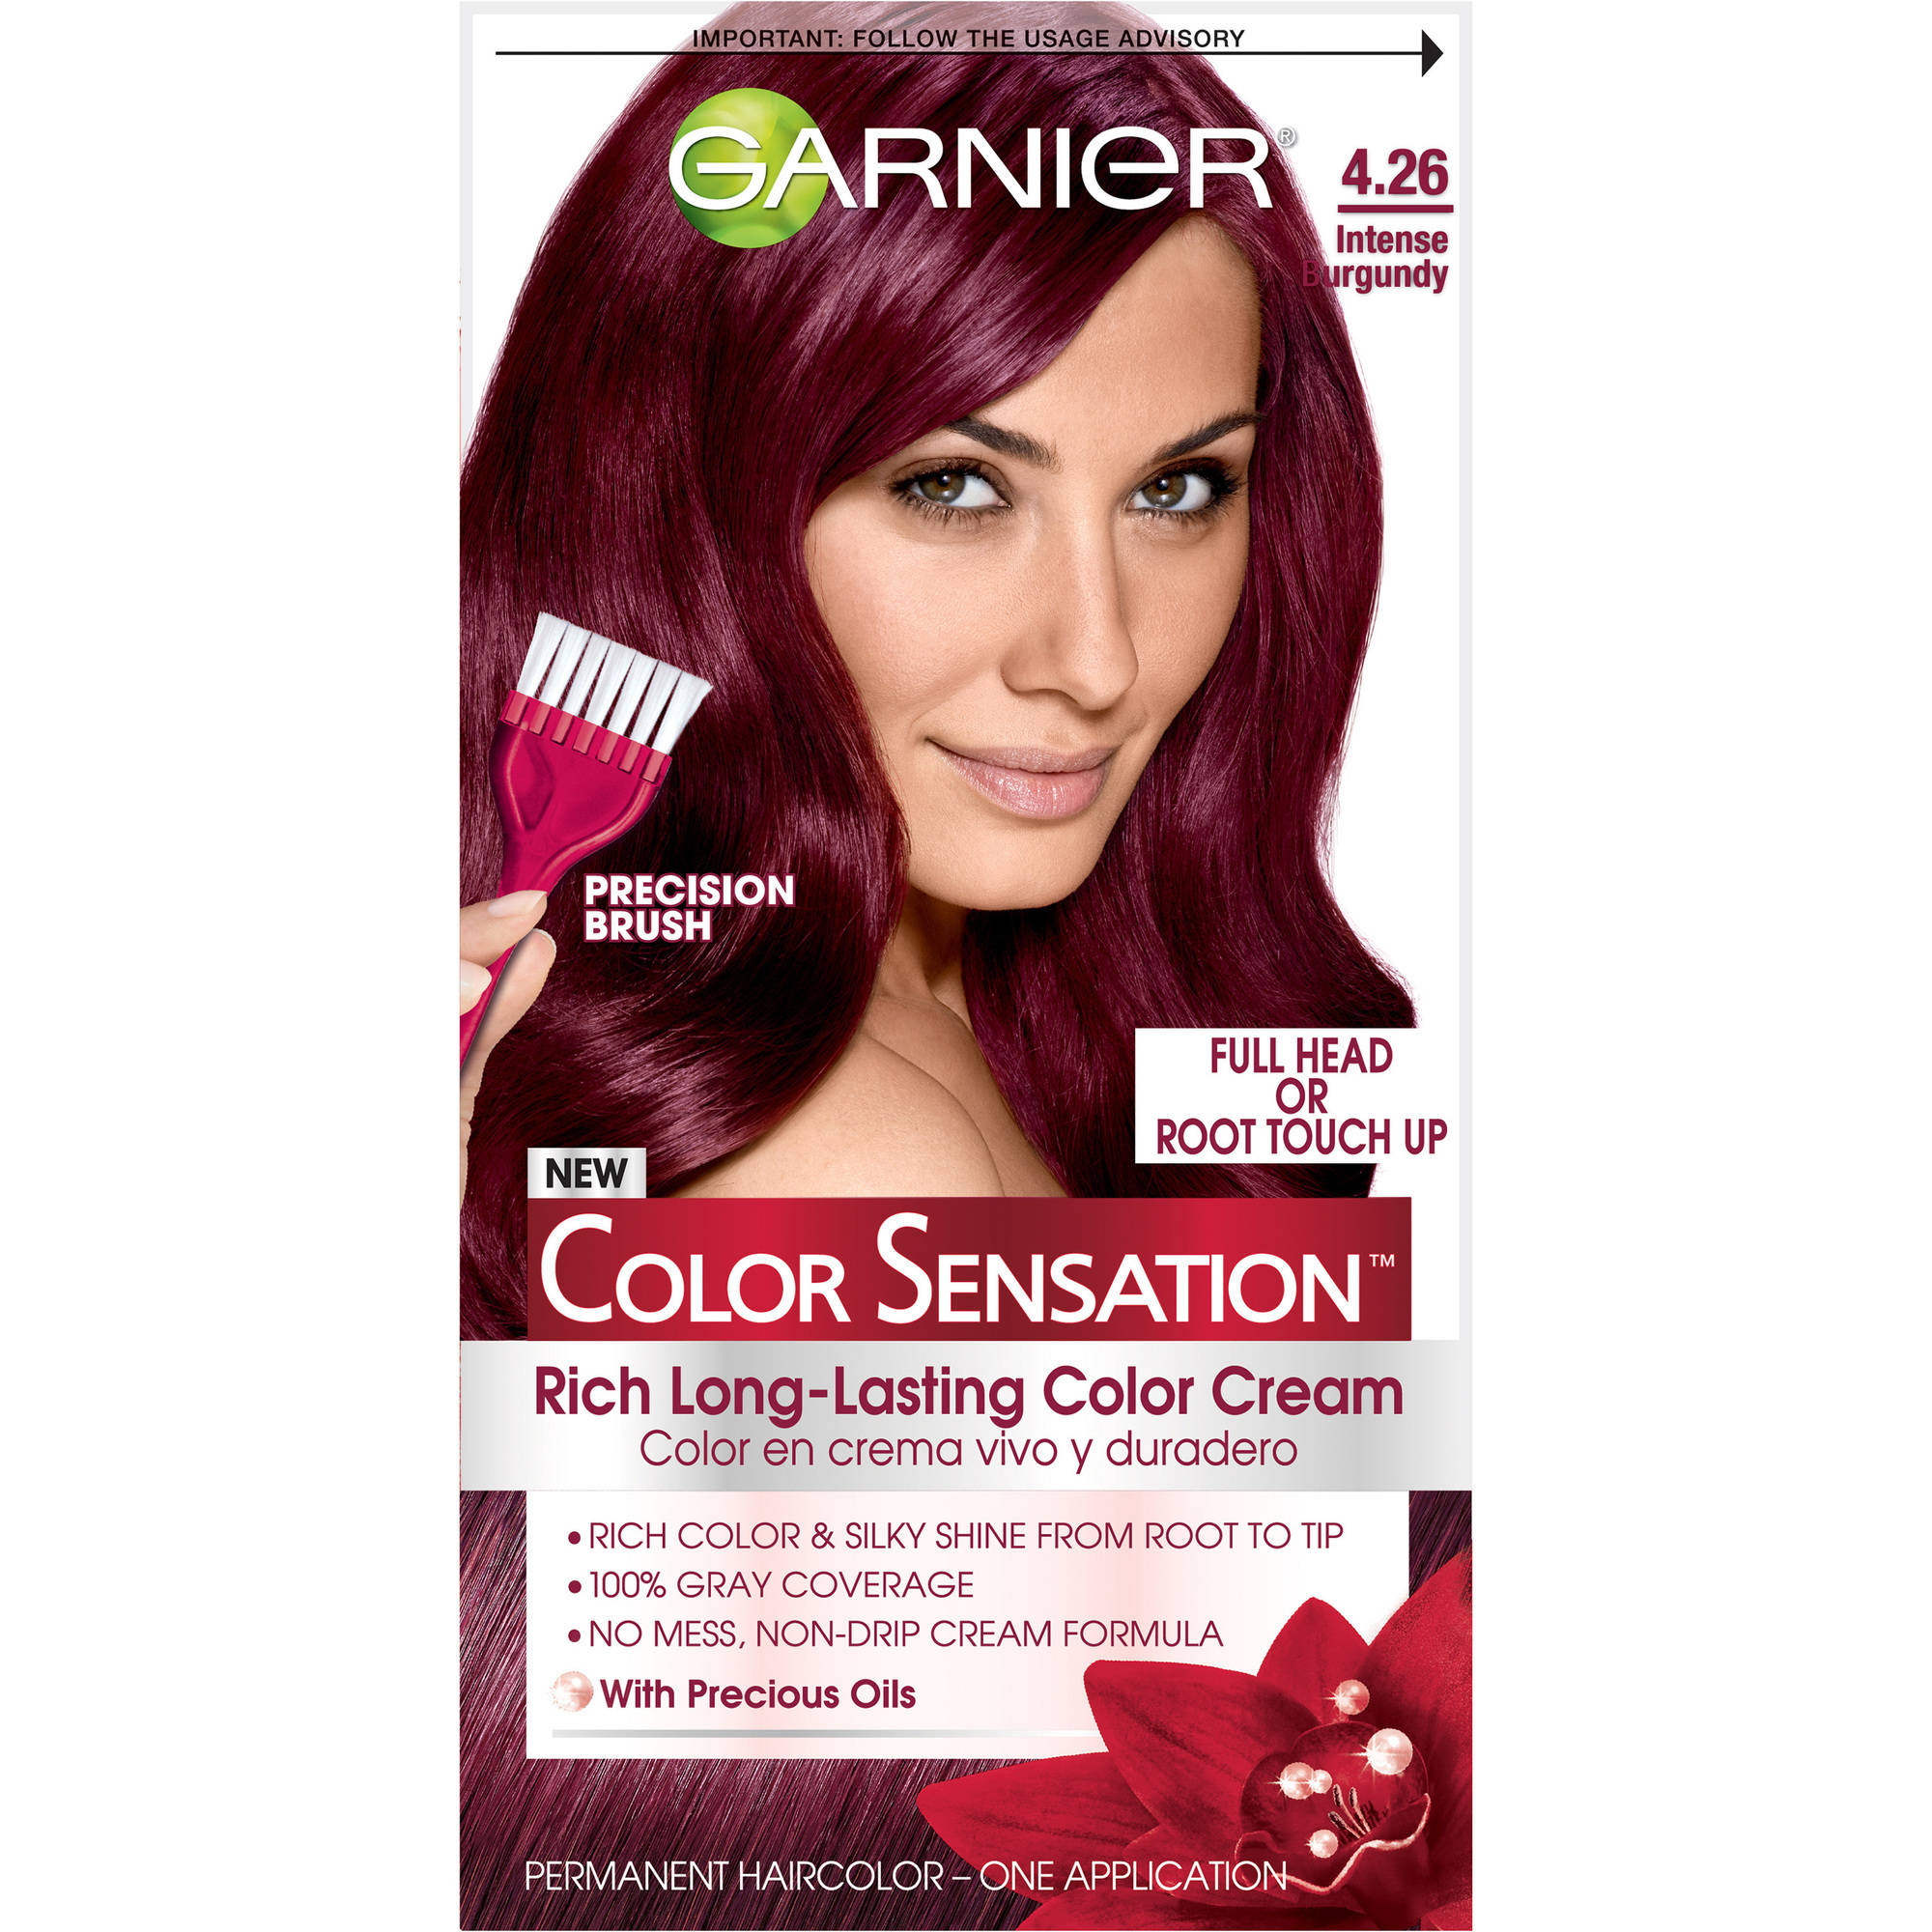 Garnier Color Sensation Rich Long-Lasting Hair Color